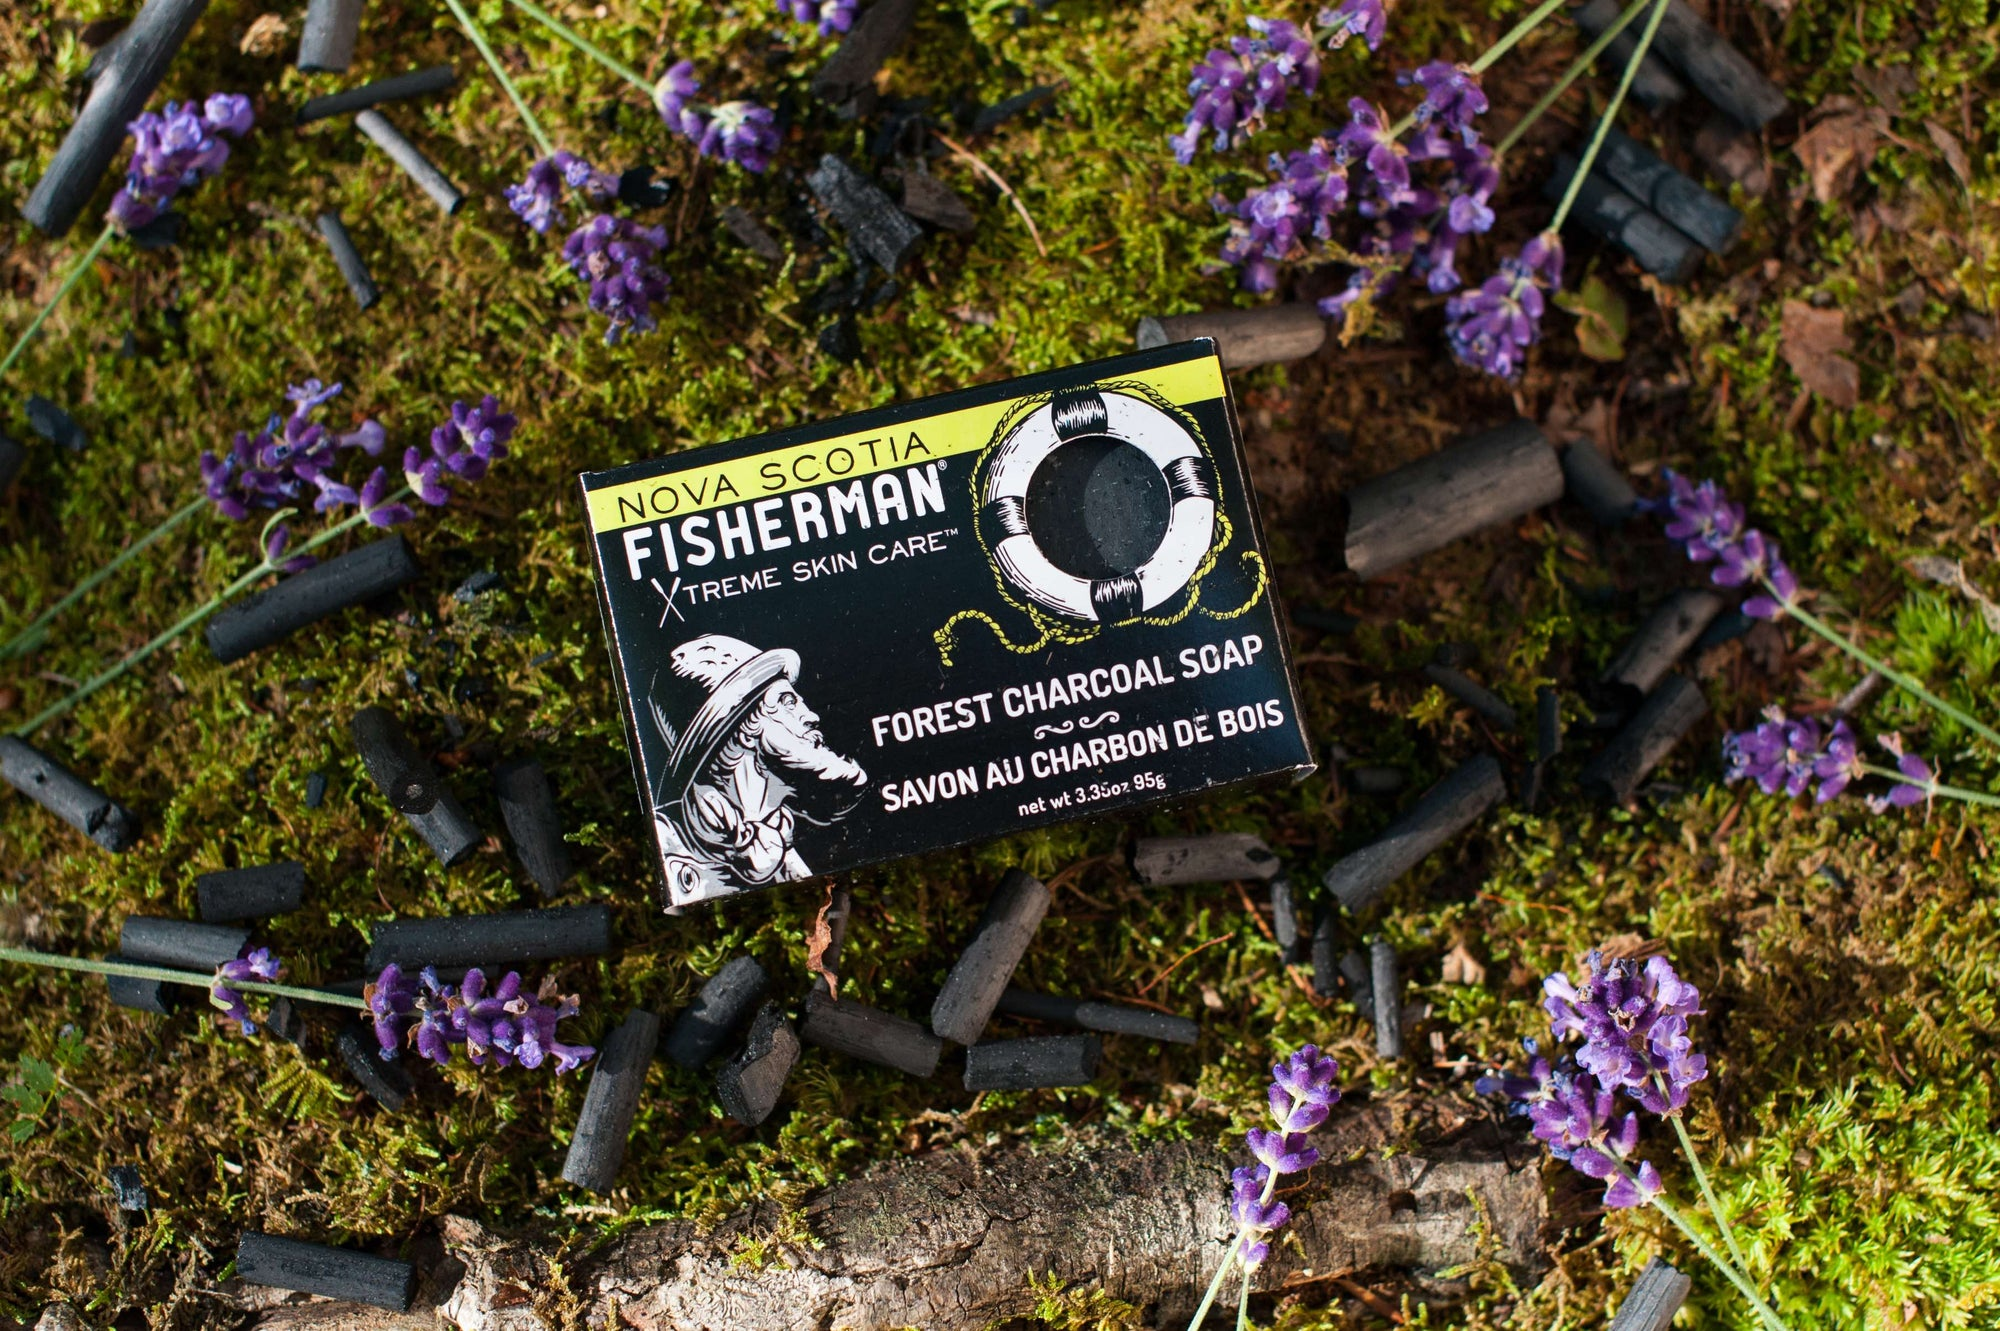 Natural Bar Soap - Forest Charcoal - Nova Scotia Fisherman Sea Kelp Skincare